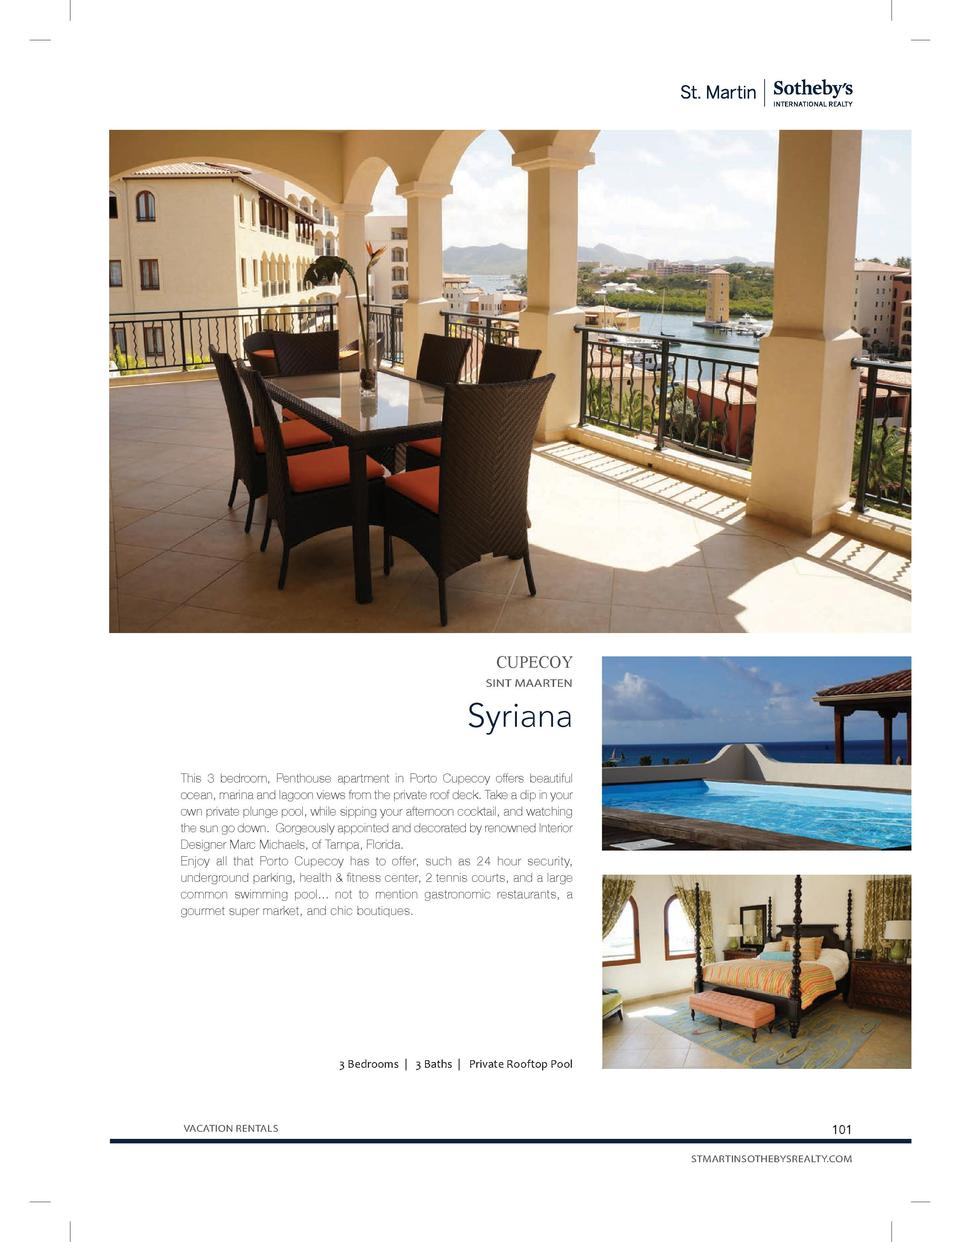 CUPECOY SINT MAARTEN  Syriana This 3 bedroom, Penthouse apartment in Porto Cupecoy offers beautiful ocean, marina and lago...